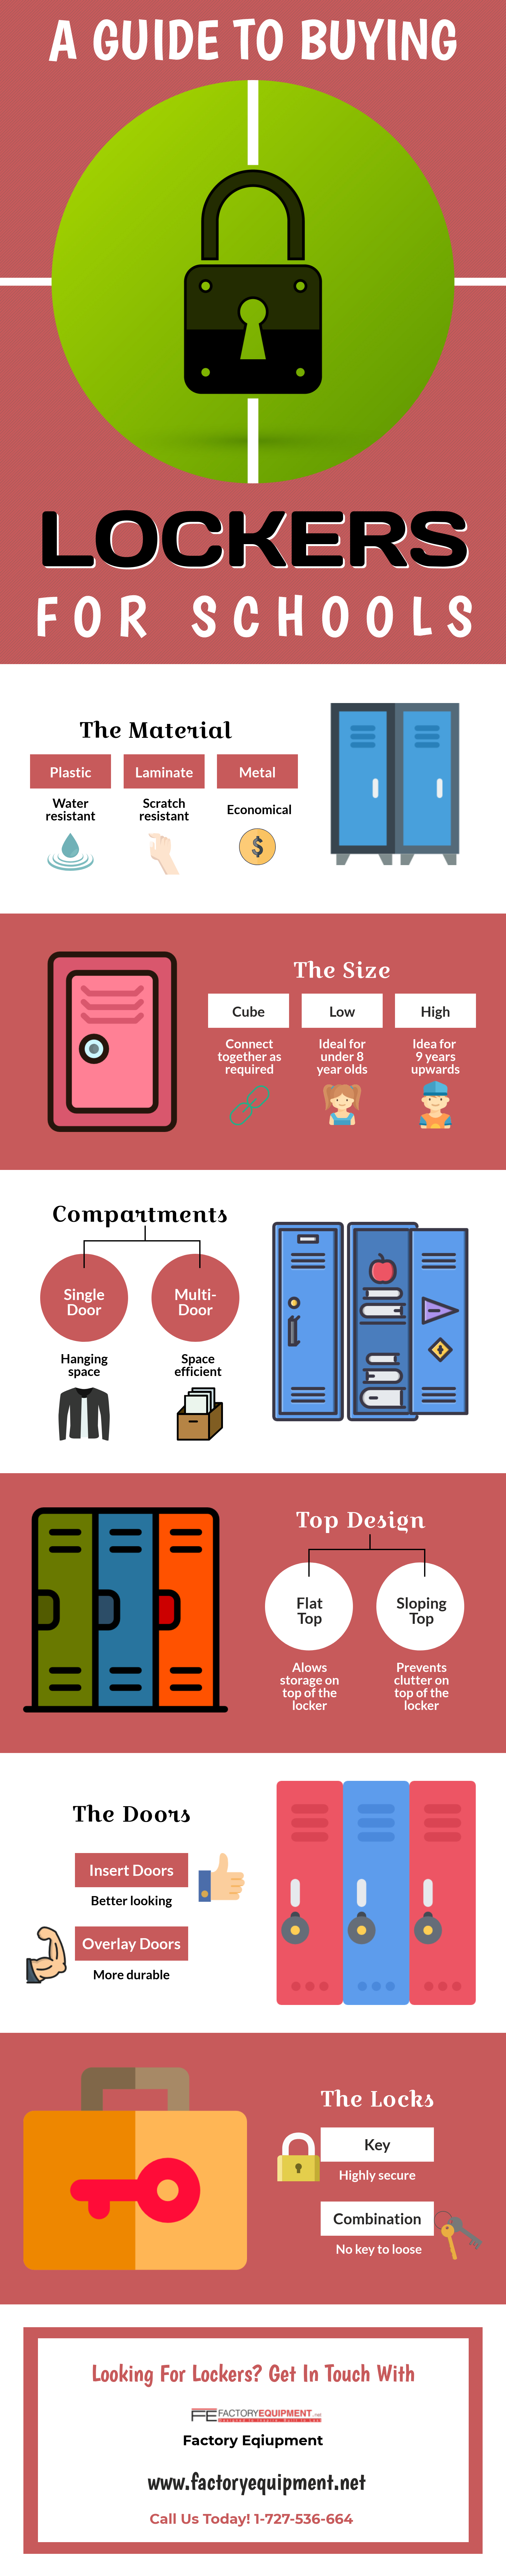 A Guide to Buying Lockers for Schools - [ Infographic ]